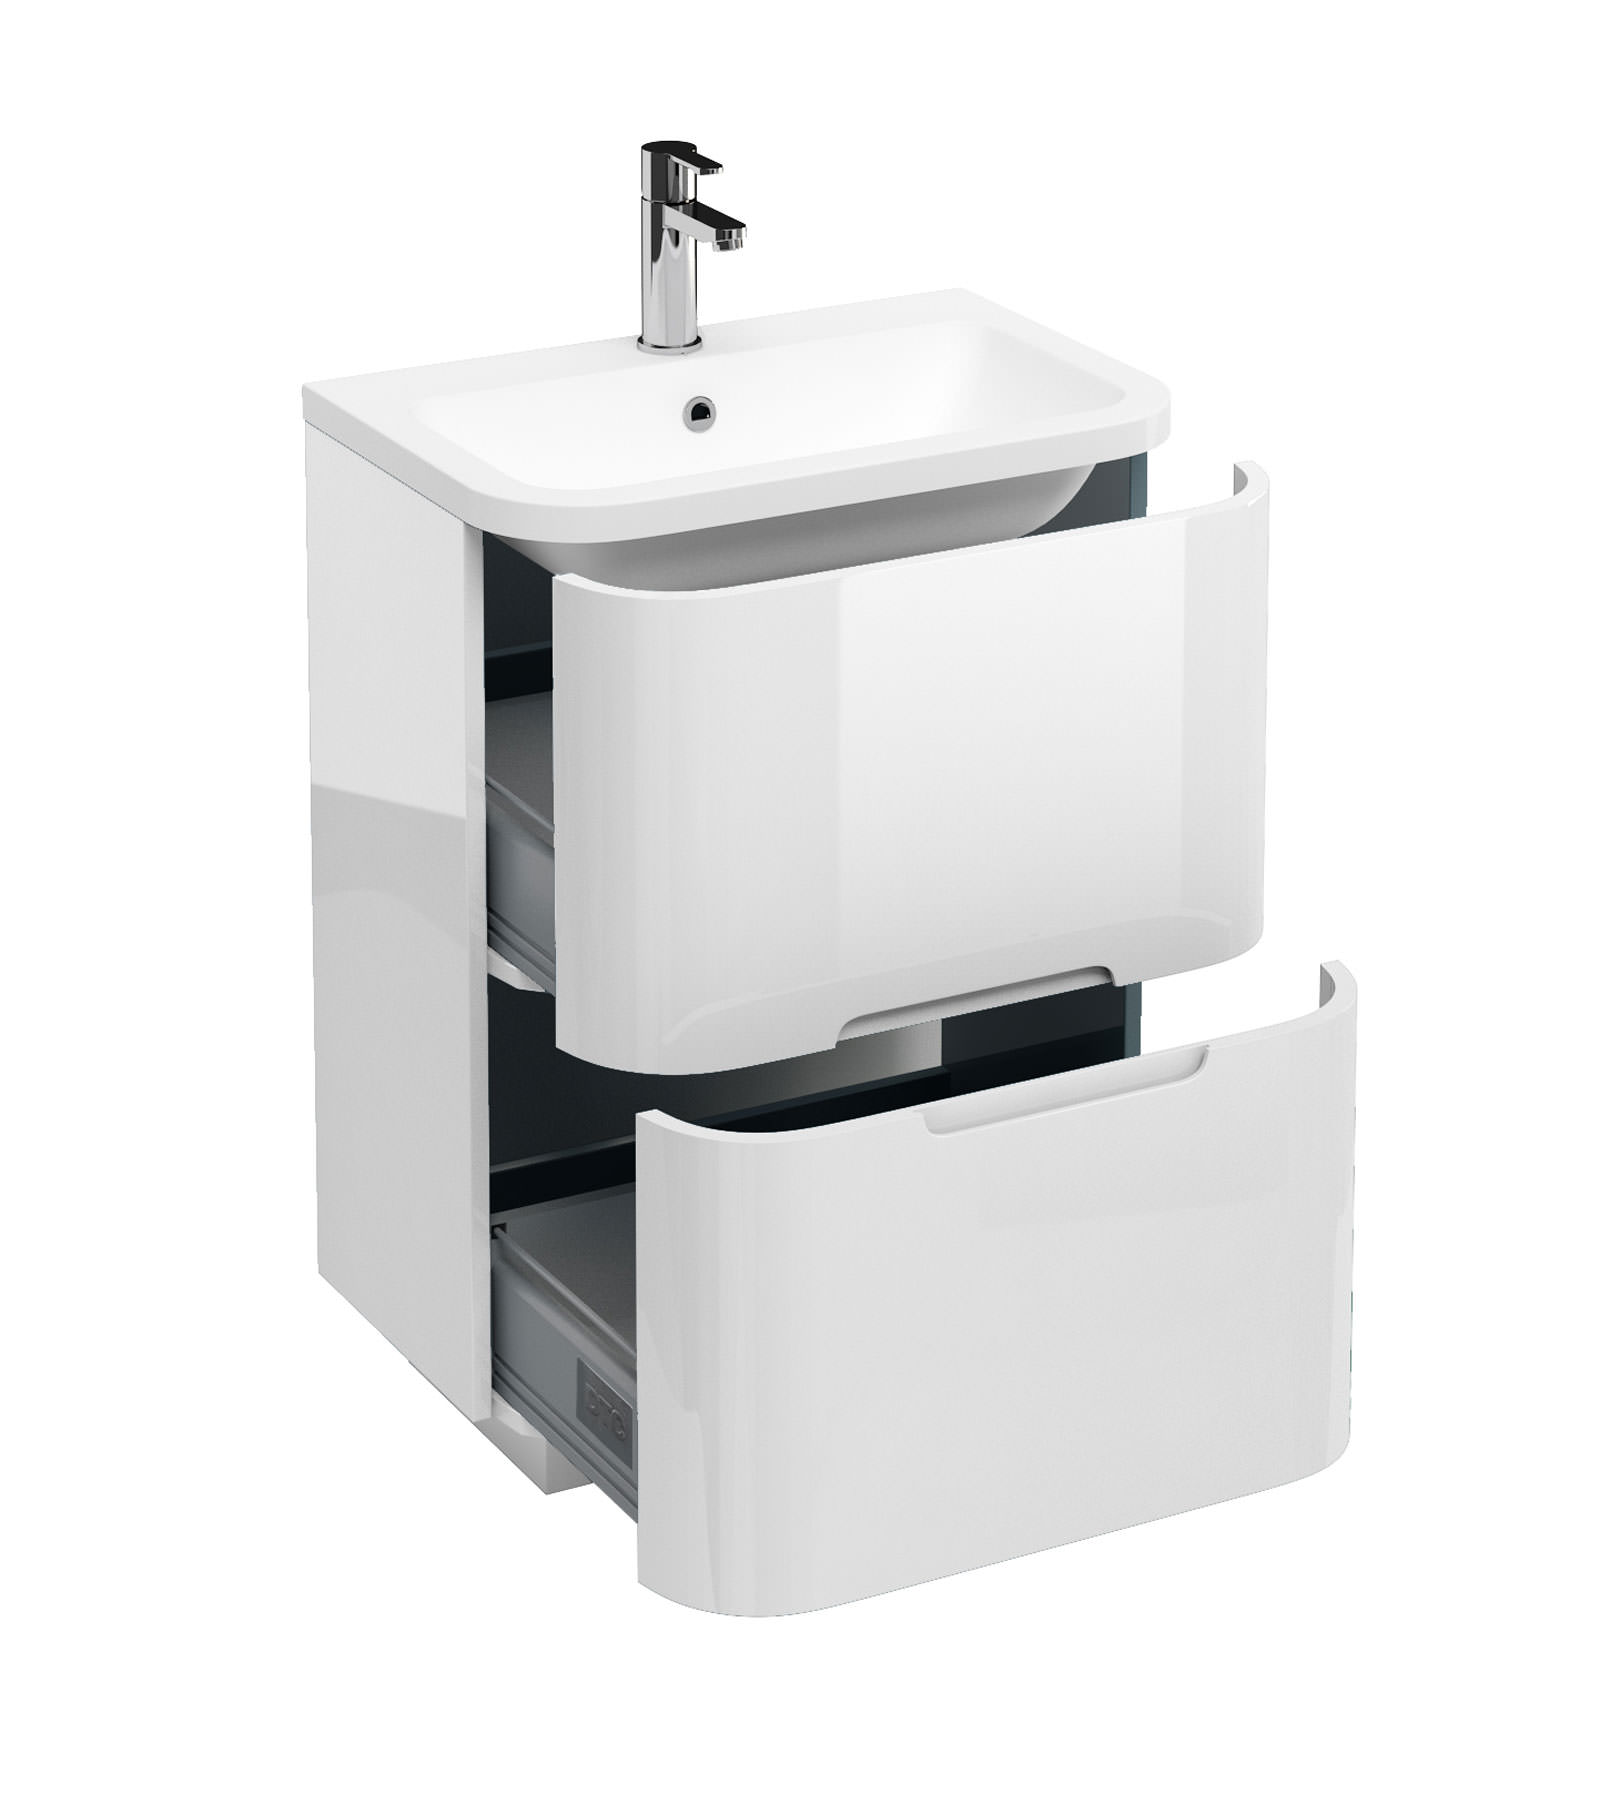 Britton aqua cabinets compact 60cm floor standing unit and for Bathroom cabinets 60cm